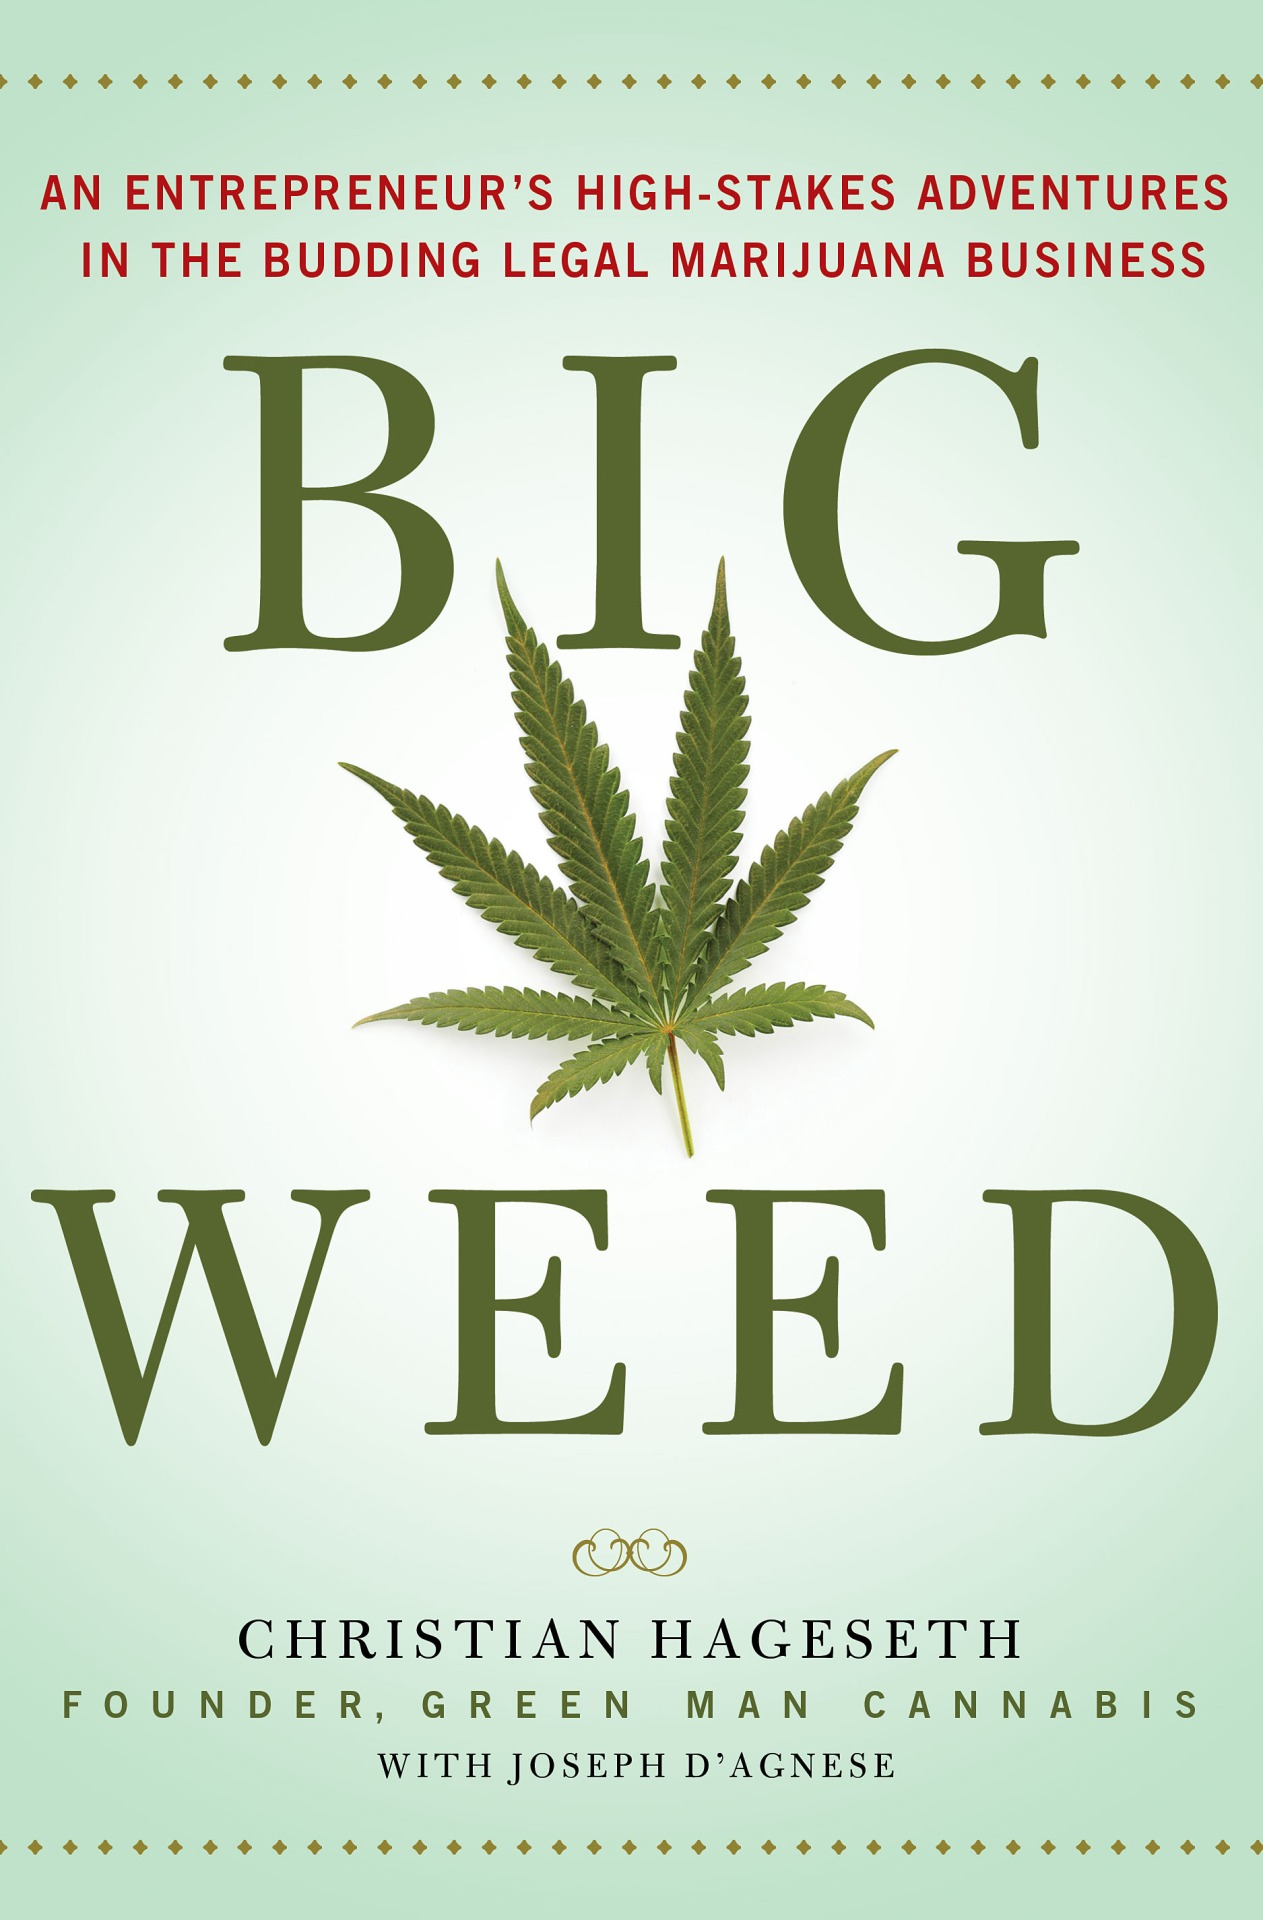 "Pre-order: BIG WEED I ghosted a business memoir this year that is already up for pre-order on Amazon, BN, iBookstore, and Kobo. Among other things, it's story of a Colorado businessman who dreams of building a state-of-the-art tourist destination in the foothills of the Rockies devoted to the glory of (legal) marijuana—and makes that dream come true. He shares the story of how he got into this burgeoning field, his company's ups and downs, and insights that can be applied to almost any other business. I've written about a half dozen books for business guys, in their voices, but Mr. Hageseth is the first to permit me to share a byline with him. You can see the gorgeous plans of his upcoming ""weedery""—which I'd describe as being like a brewery, winery, meadery, or cidery, only with marijuana—at this website. The $25 million-dollar facility is currently under construction. Palgrave/Macmillan pubs the book April 20, 2015, a date that has special significance for cannabis lovers. What's my special contribution to this project? Sneaking into the text this H.P. Lovecraft reference. Please note: If you would prefer to pre-order through an independent bookstore, please hold off buying. I should have info about signed indie pre-orders soon. In any case, keep a receipt of your purchase. There is likely to be some type of intoxicating giveaway looming in the future."